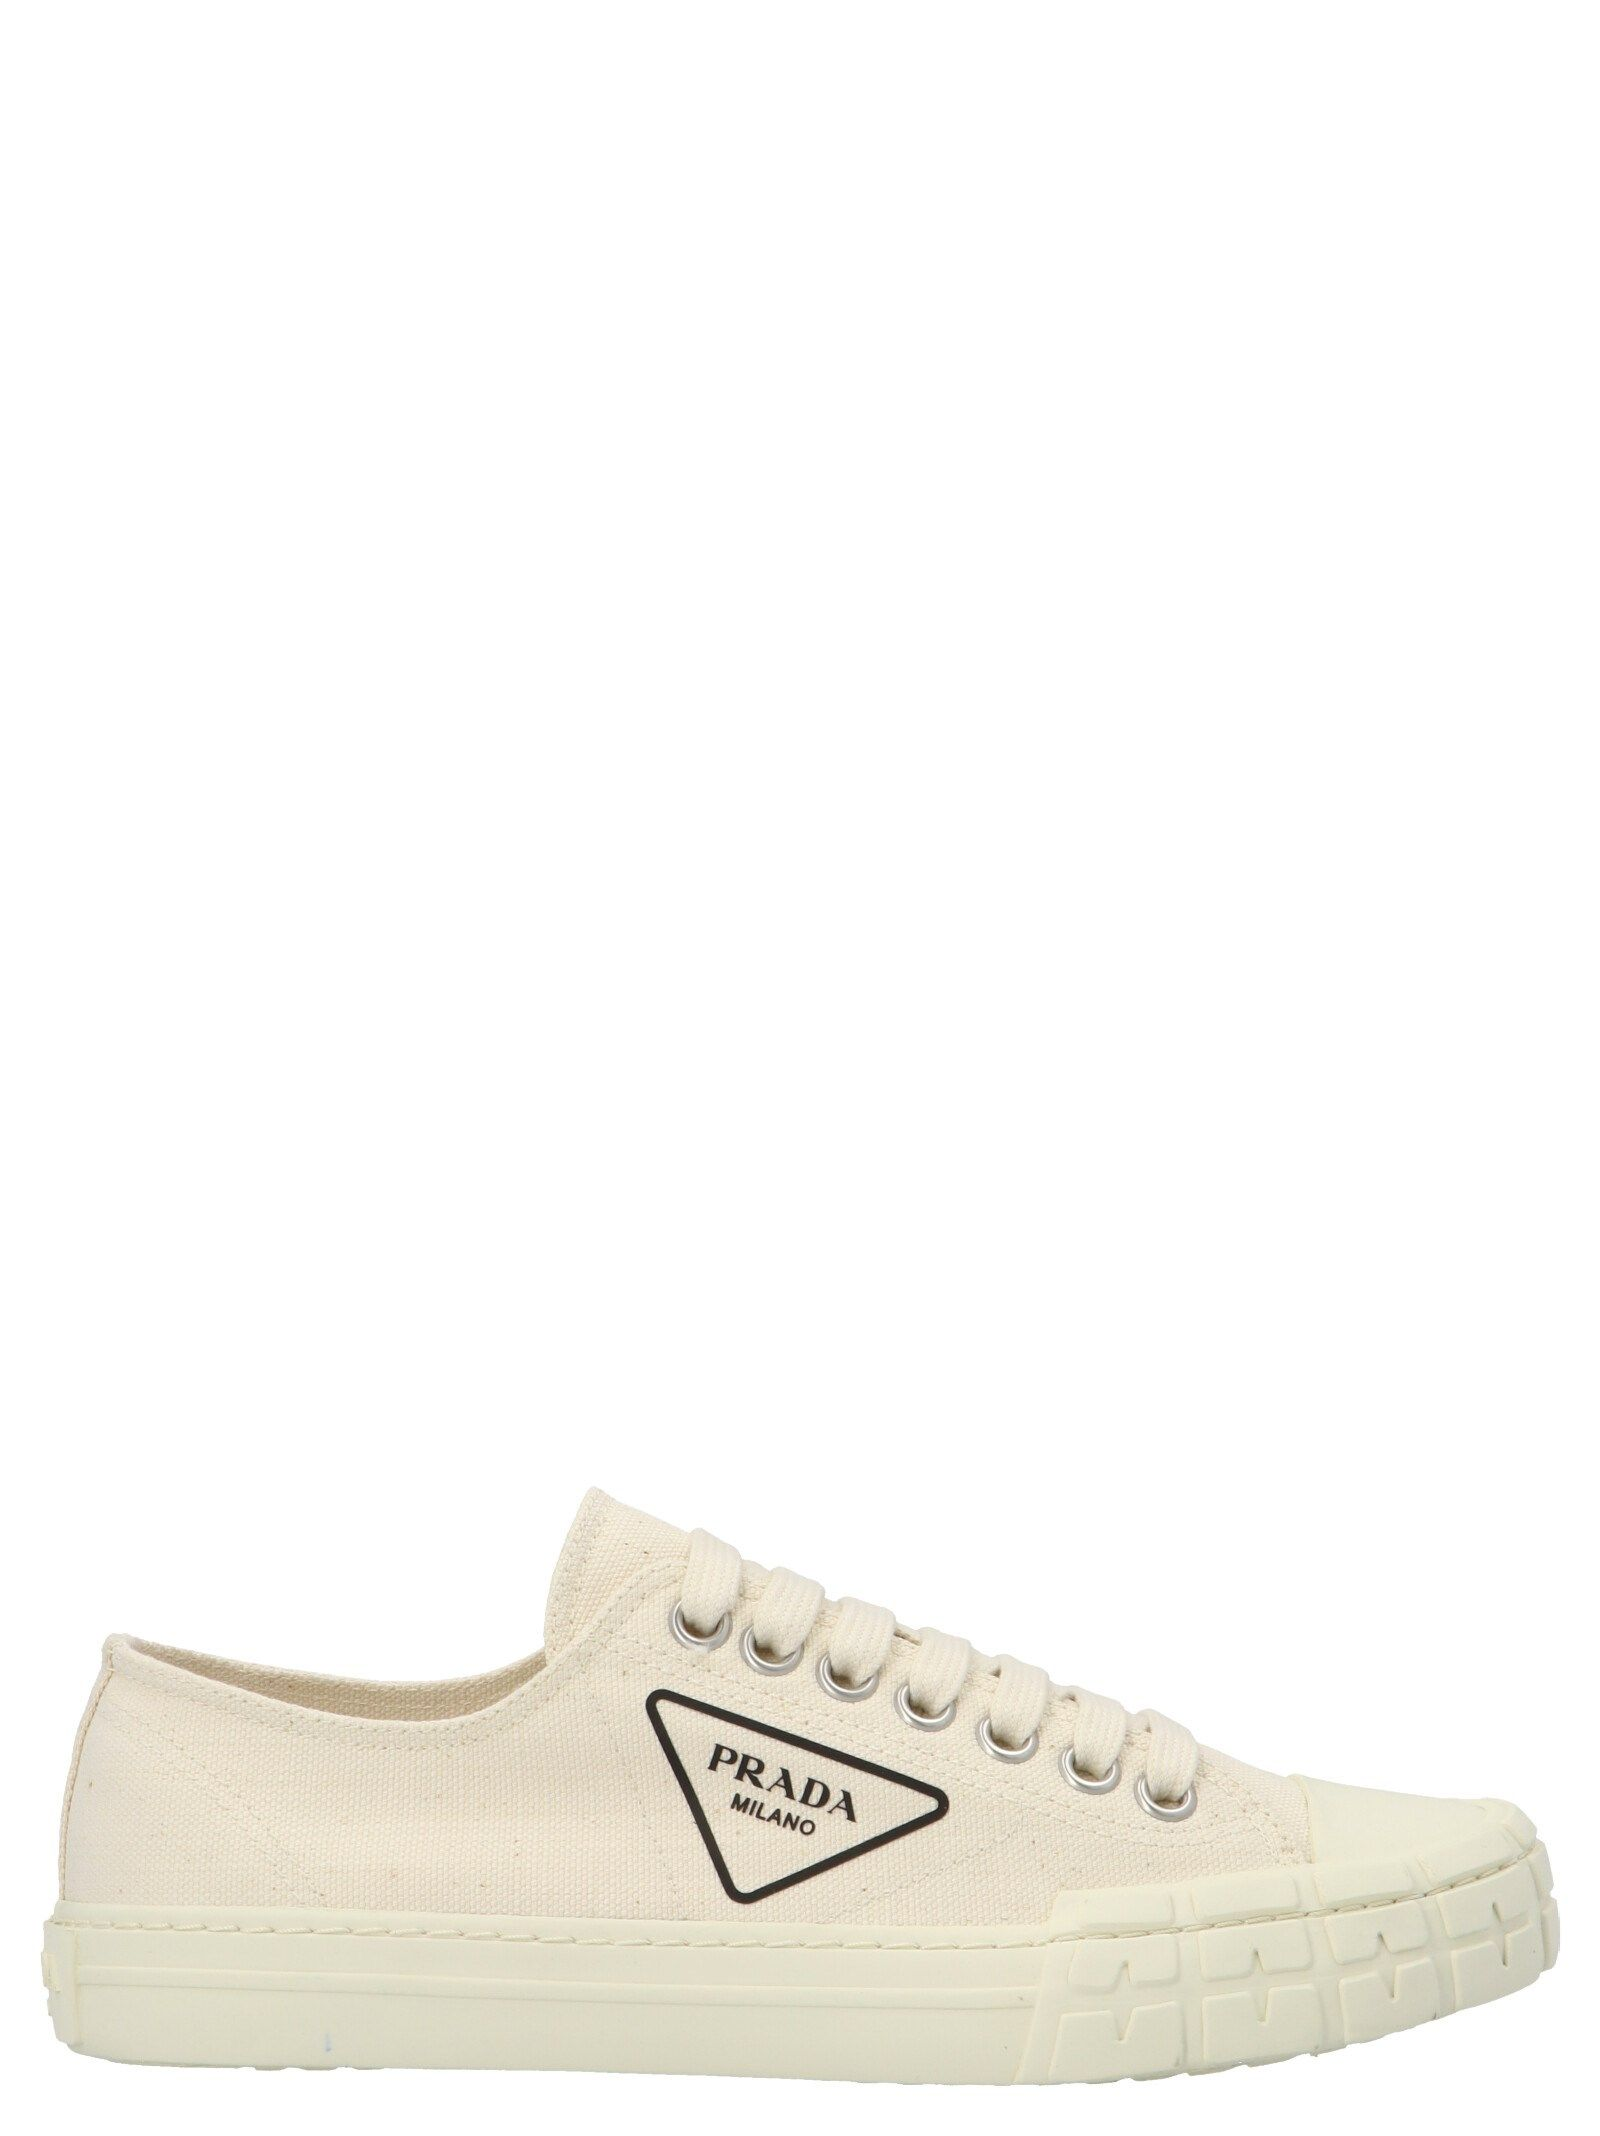 Prada PRADA MEN'S 4E35482OFZF0034 WHITE OTHER MATERIALS SNEAKERS